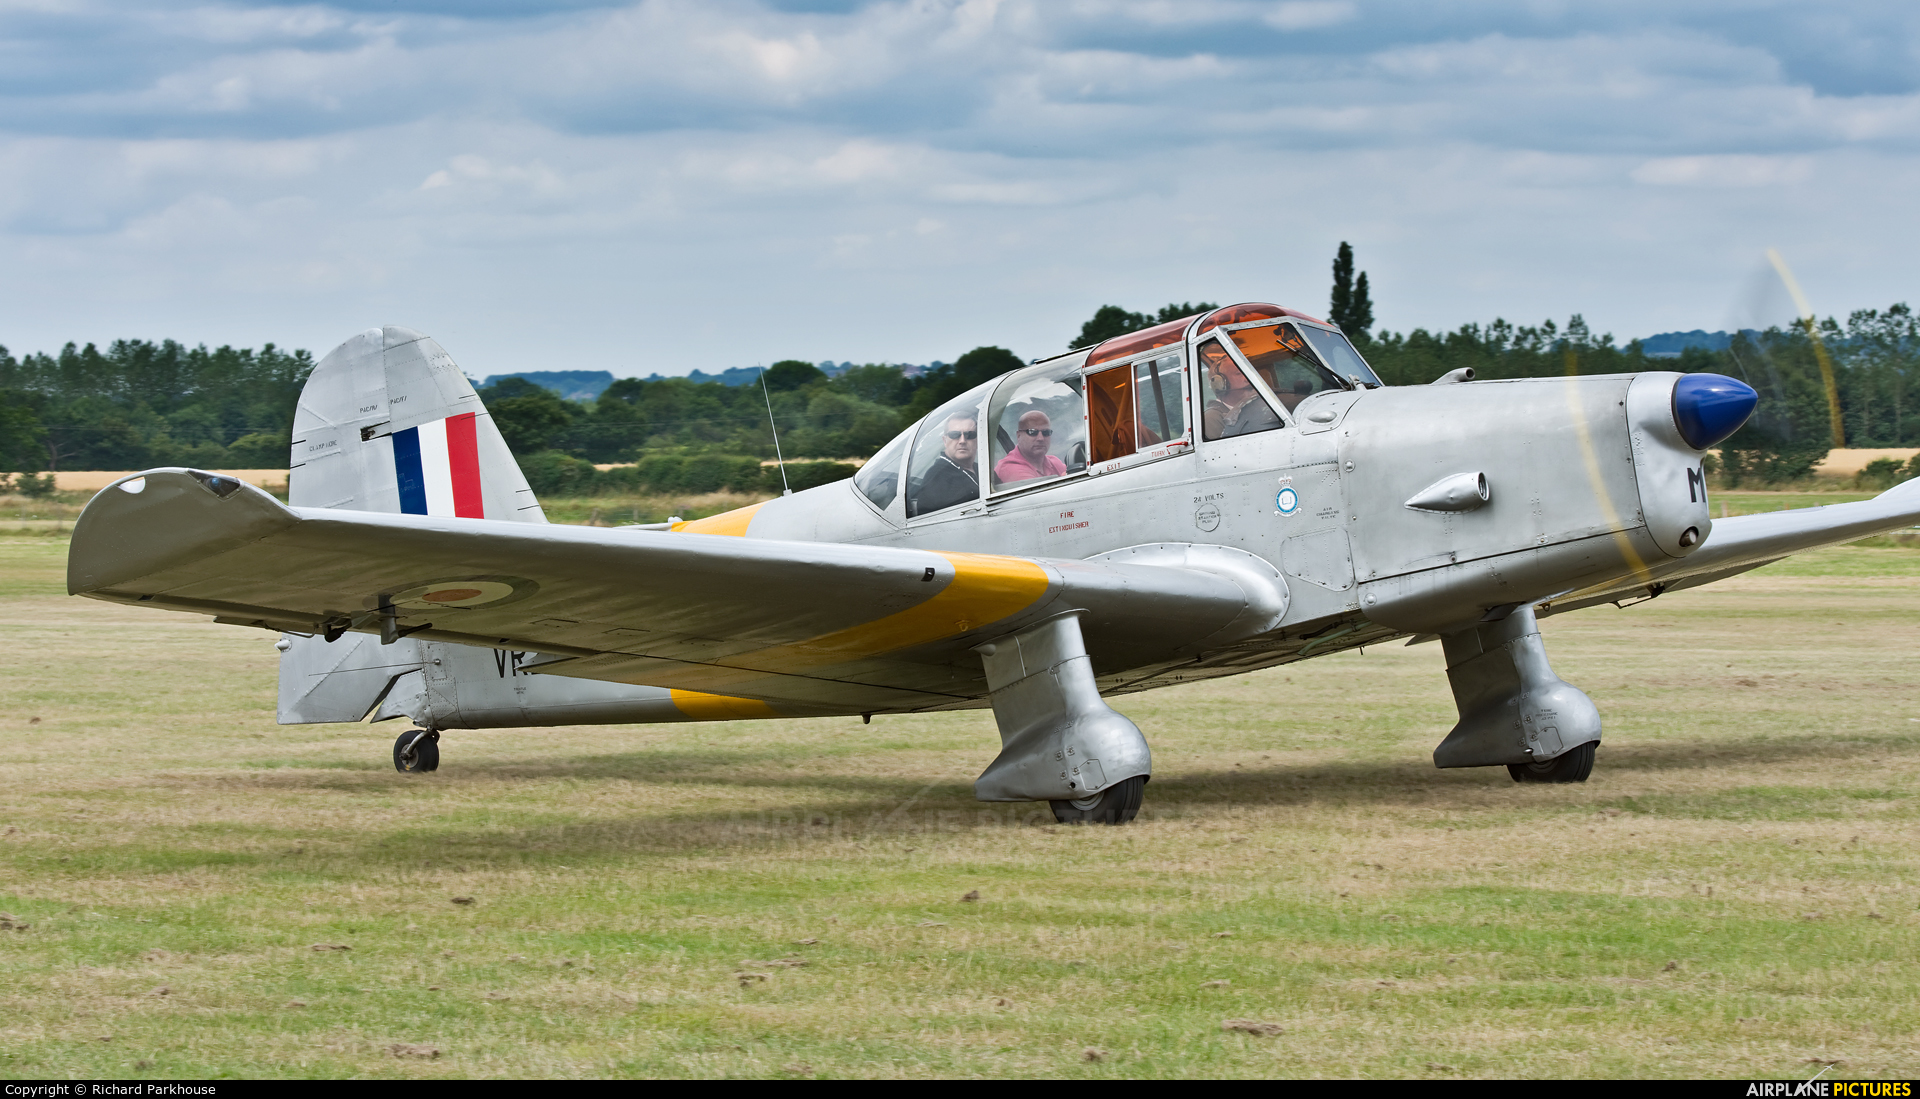 Aerolegends G-APJB aircraft at Lashenden / Headcorn